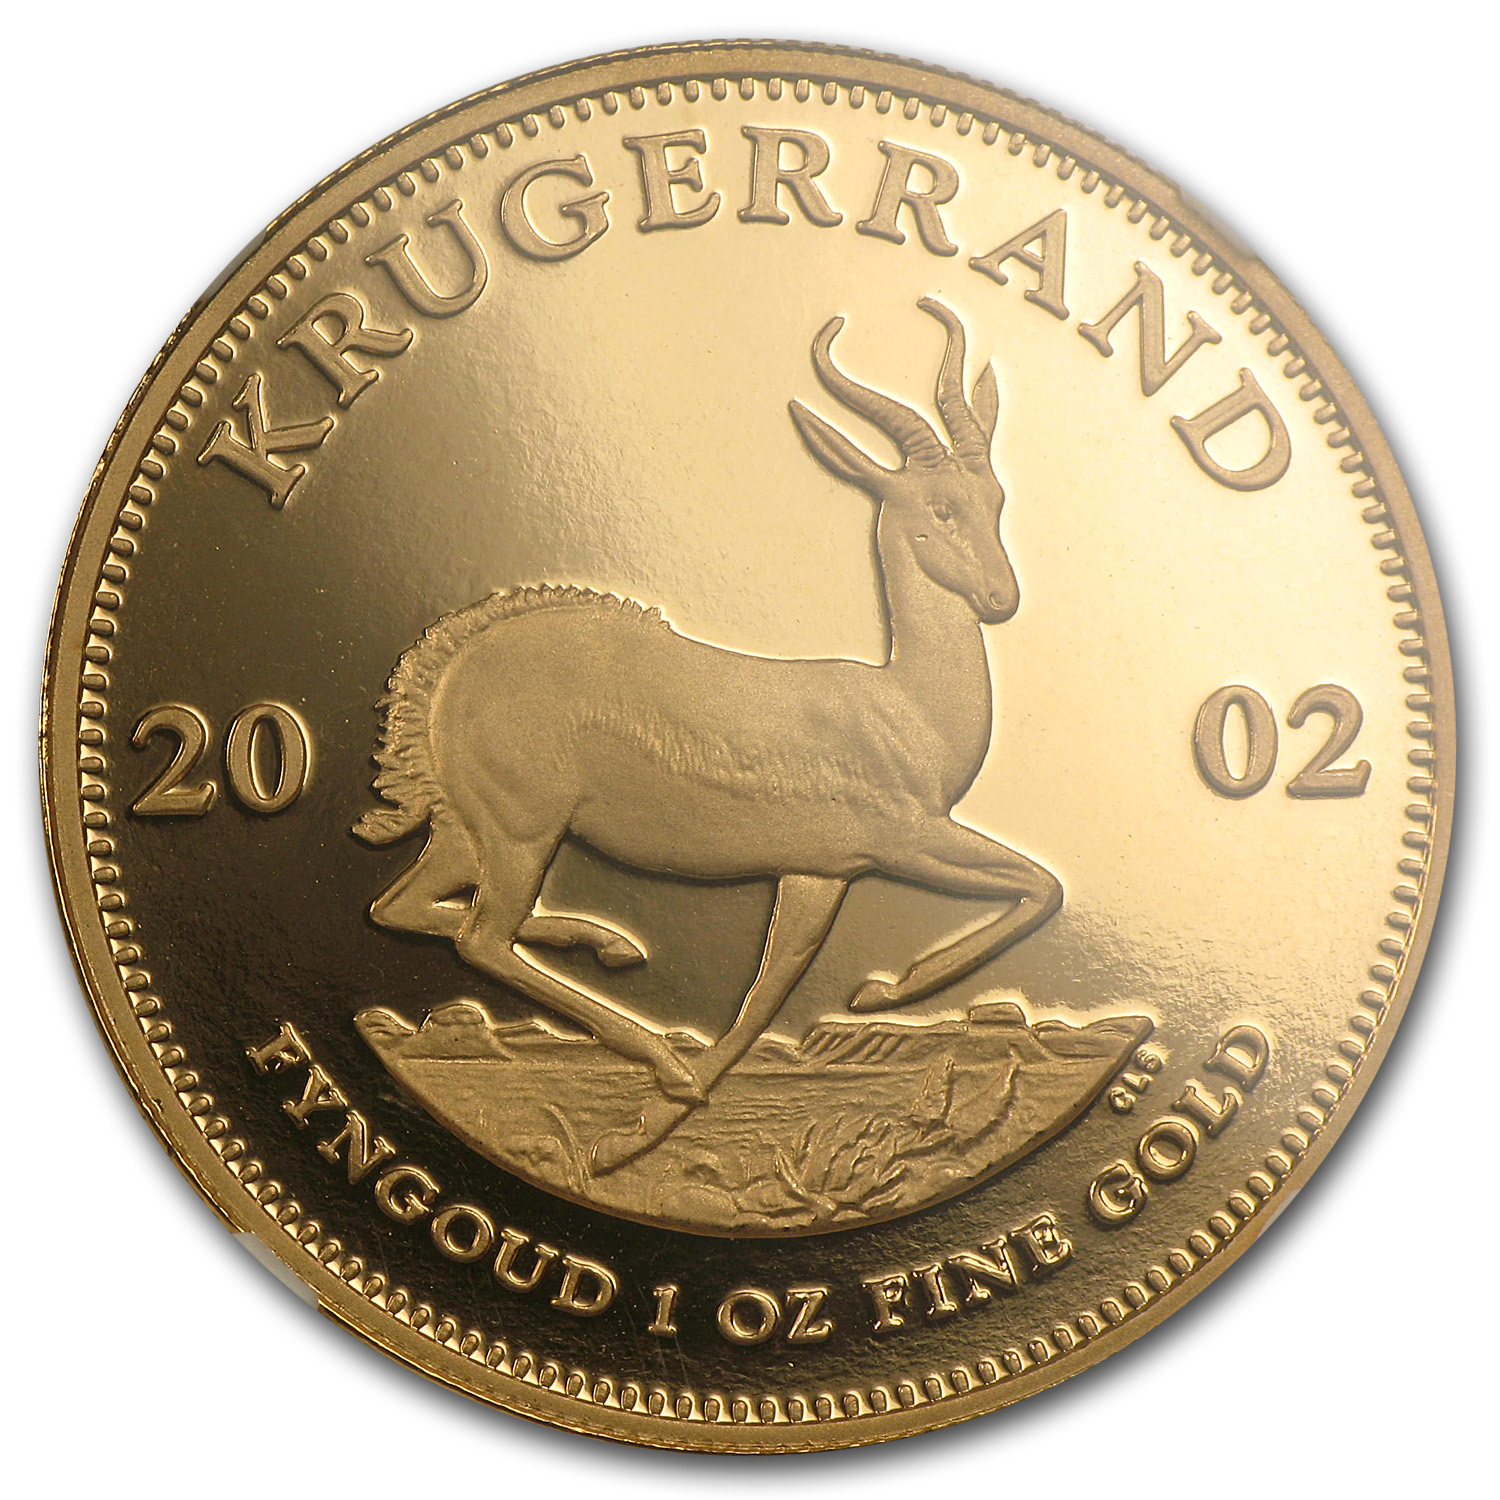 2002 South Africa 1 oz Gold Krugerrand PF-69 Ultra Cameo NGC